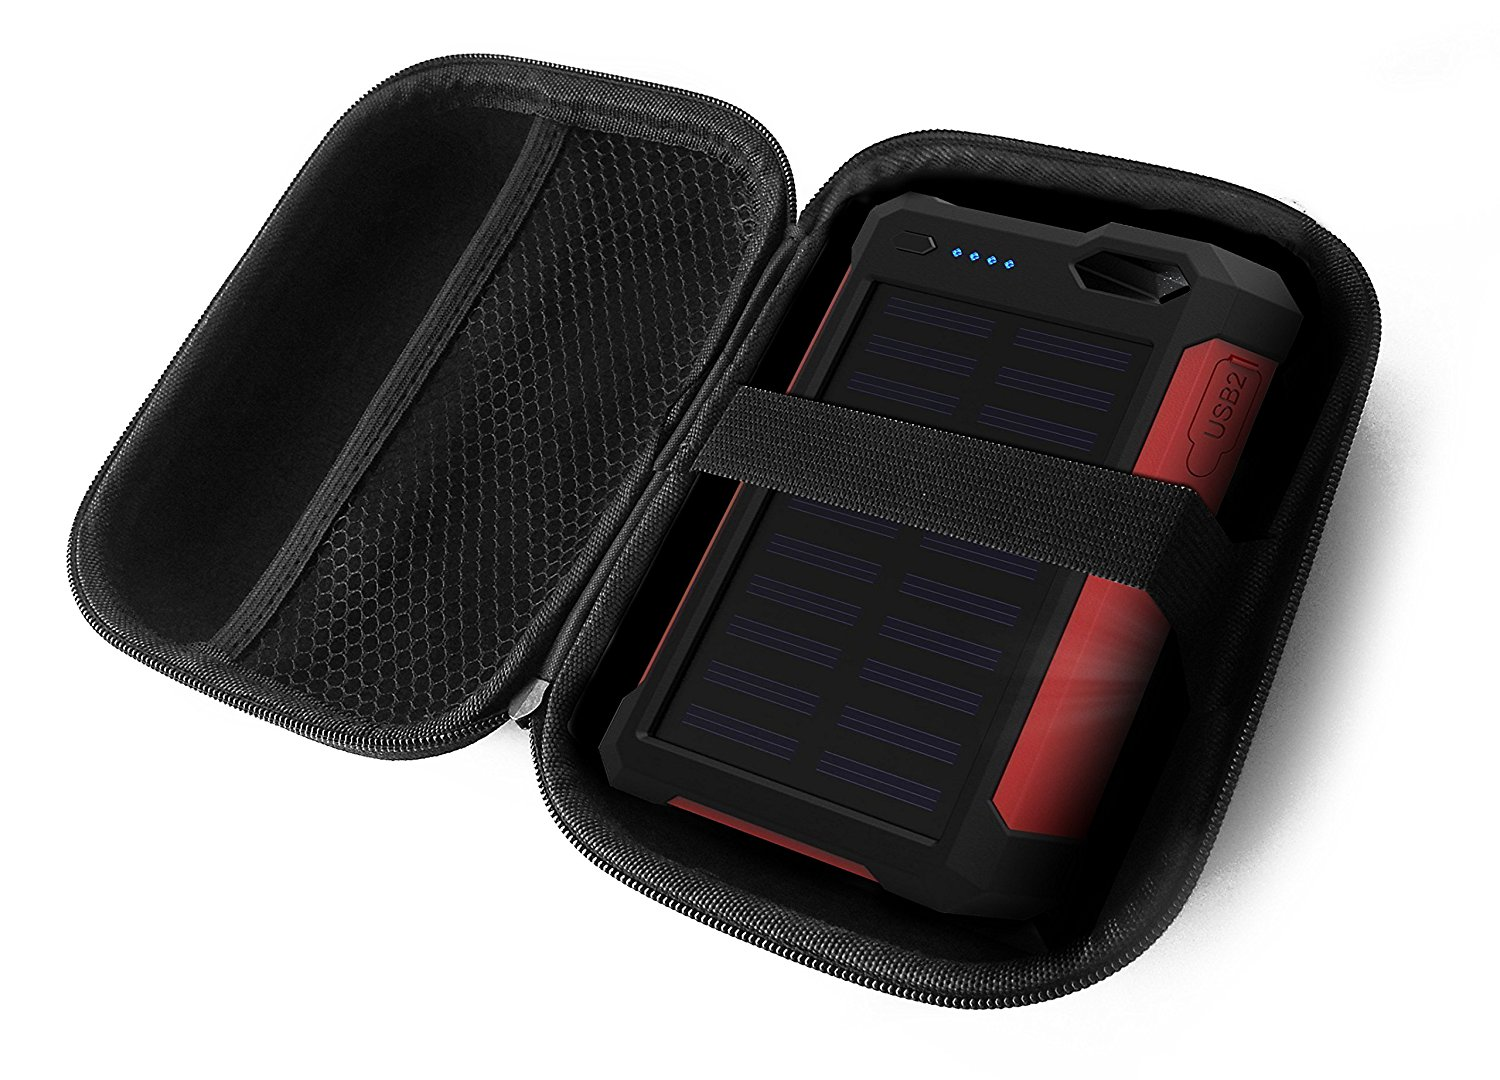 FitSand Hard Case for iClever 10000mAh Portable Solar Power Bank Dual USB Port Charger Battery Travel Zipper Carry EVA Best Protection Box